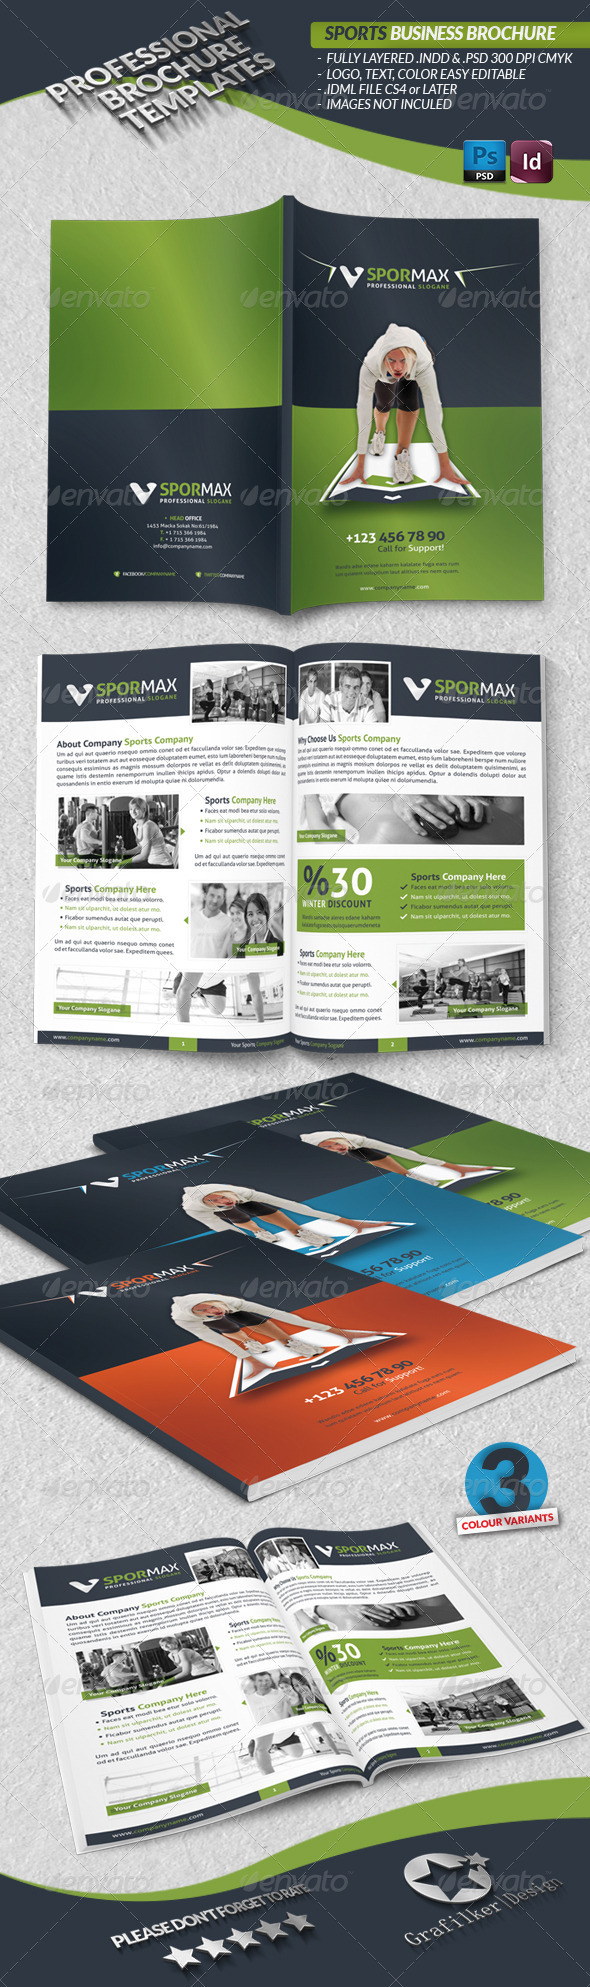 GraphicRiver Sports Business Brochure 3948240